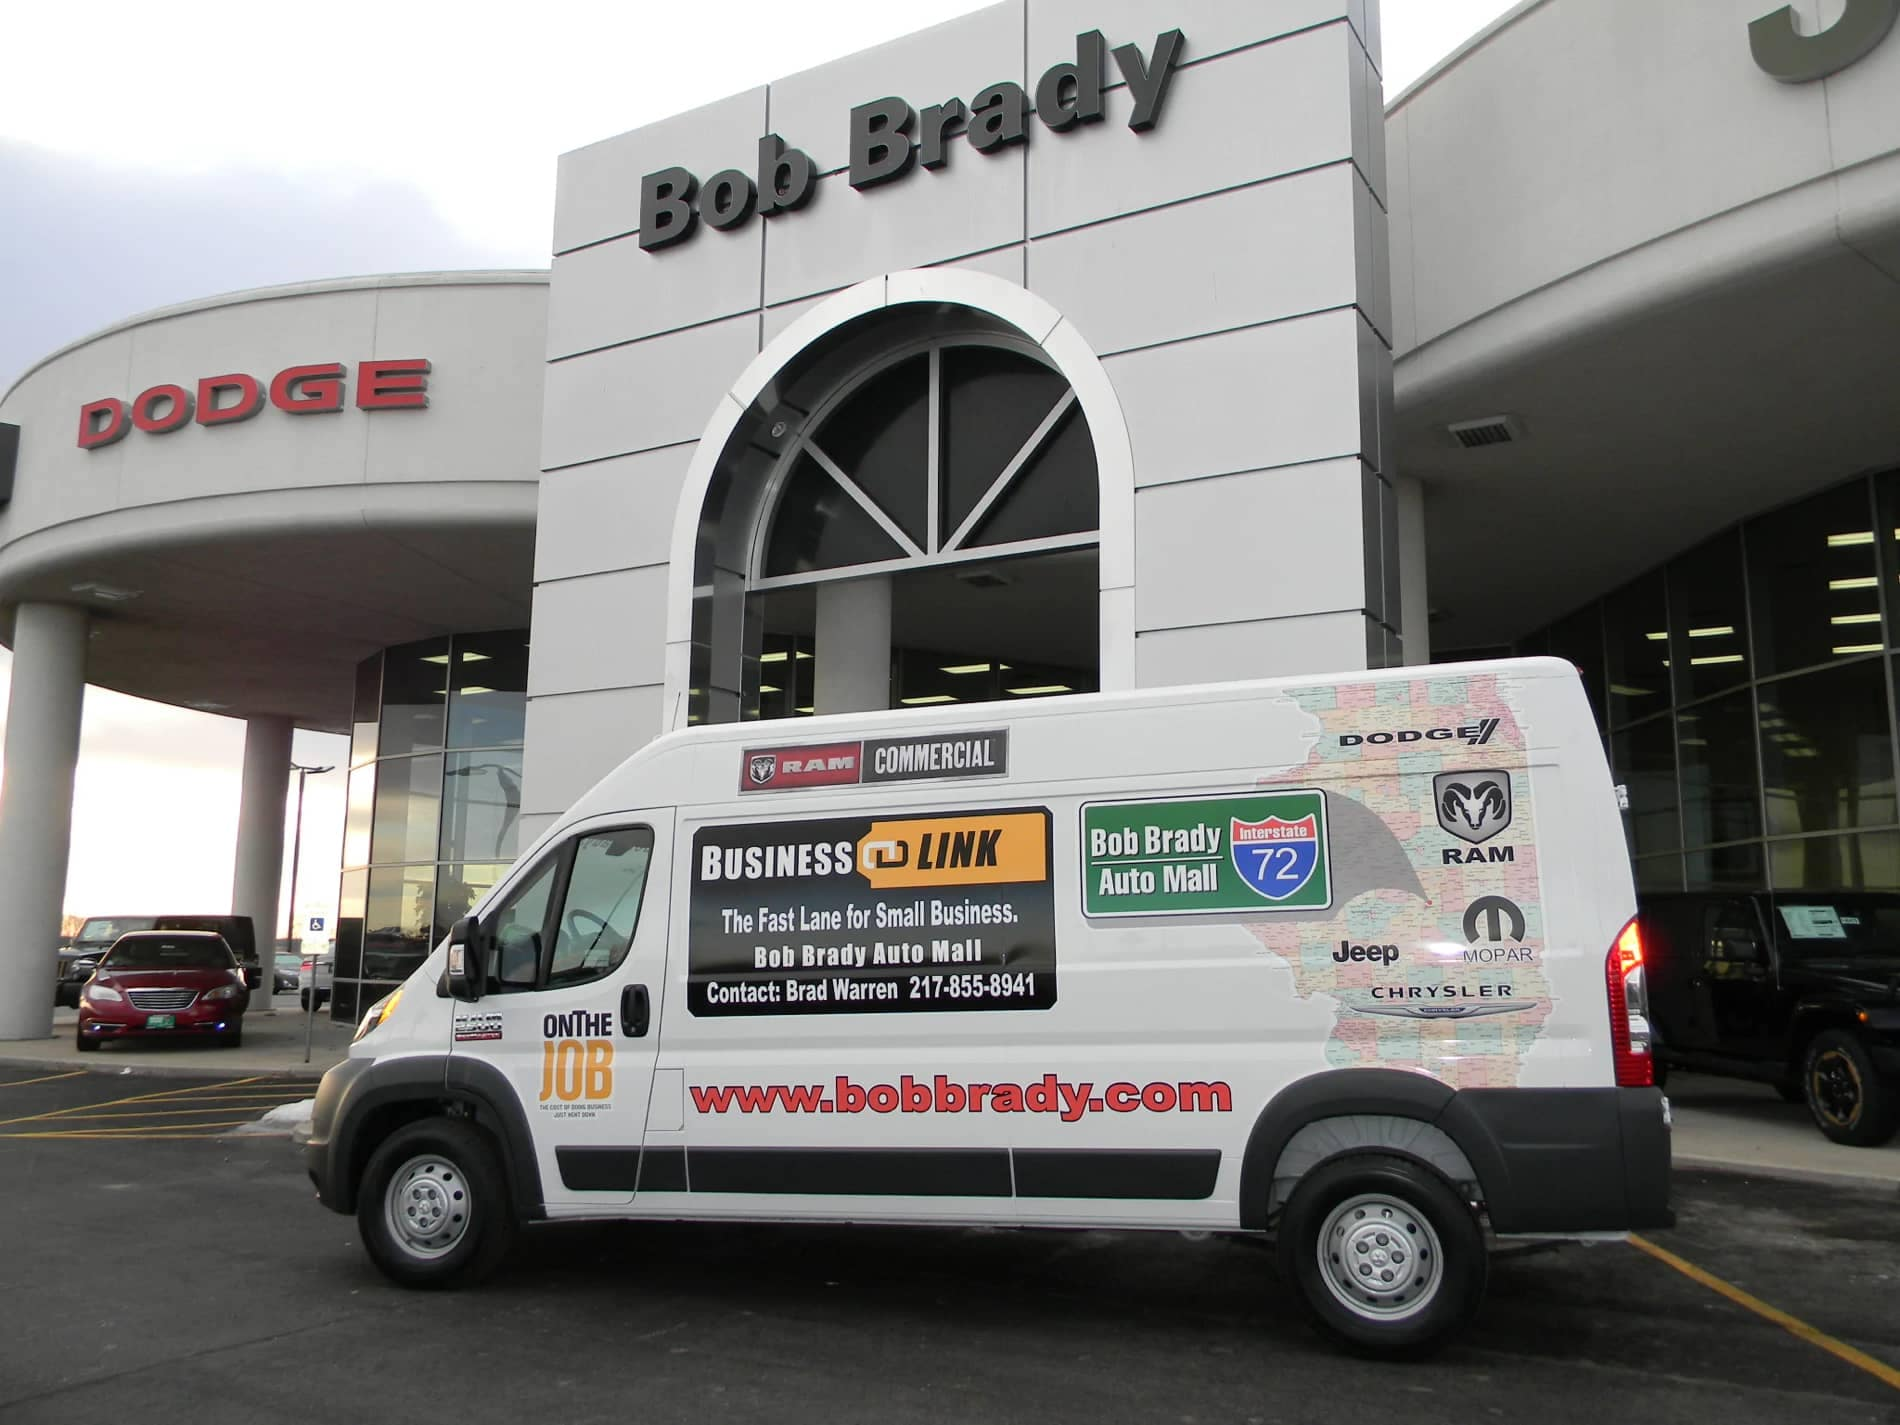 Bob Brady Van with Business Link Banner on Side